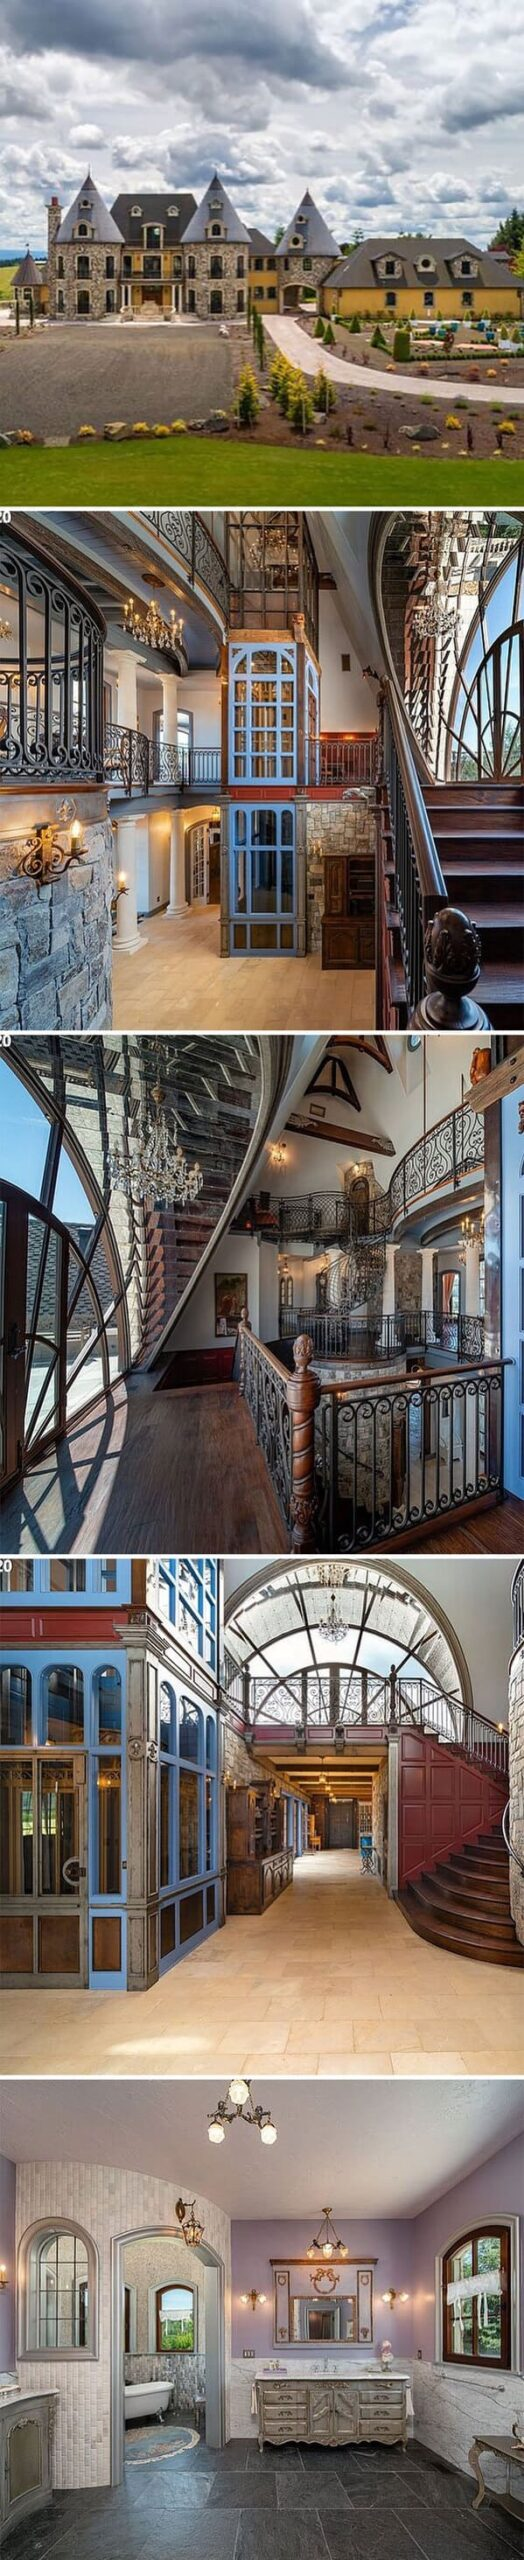 blue elevator house, Zillow gone wild, weird and funny real estate listings, real estate agents who did extra, lol, funny pics of houses, ridiculous houses to buy, zillowgonewild, instagram, humor, funny pics